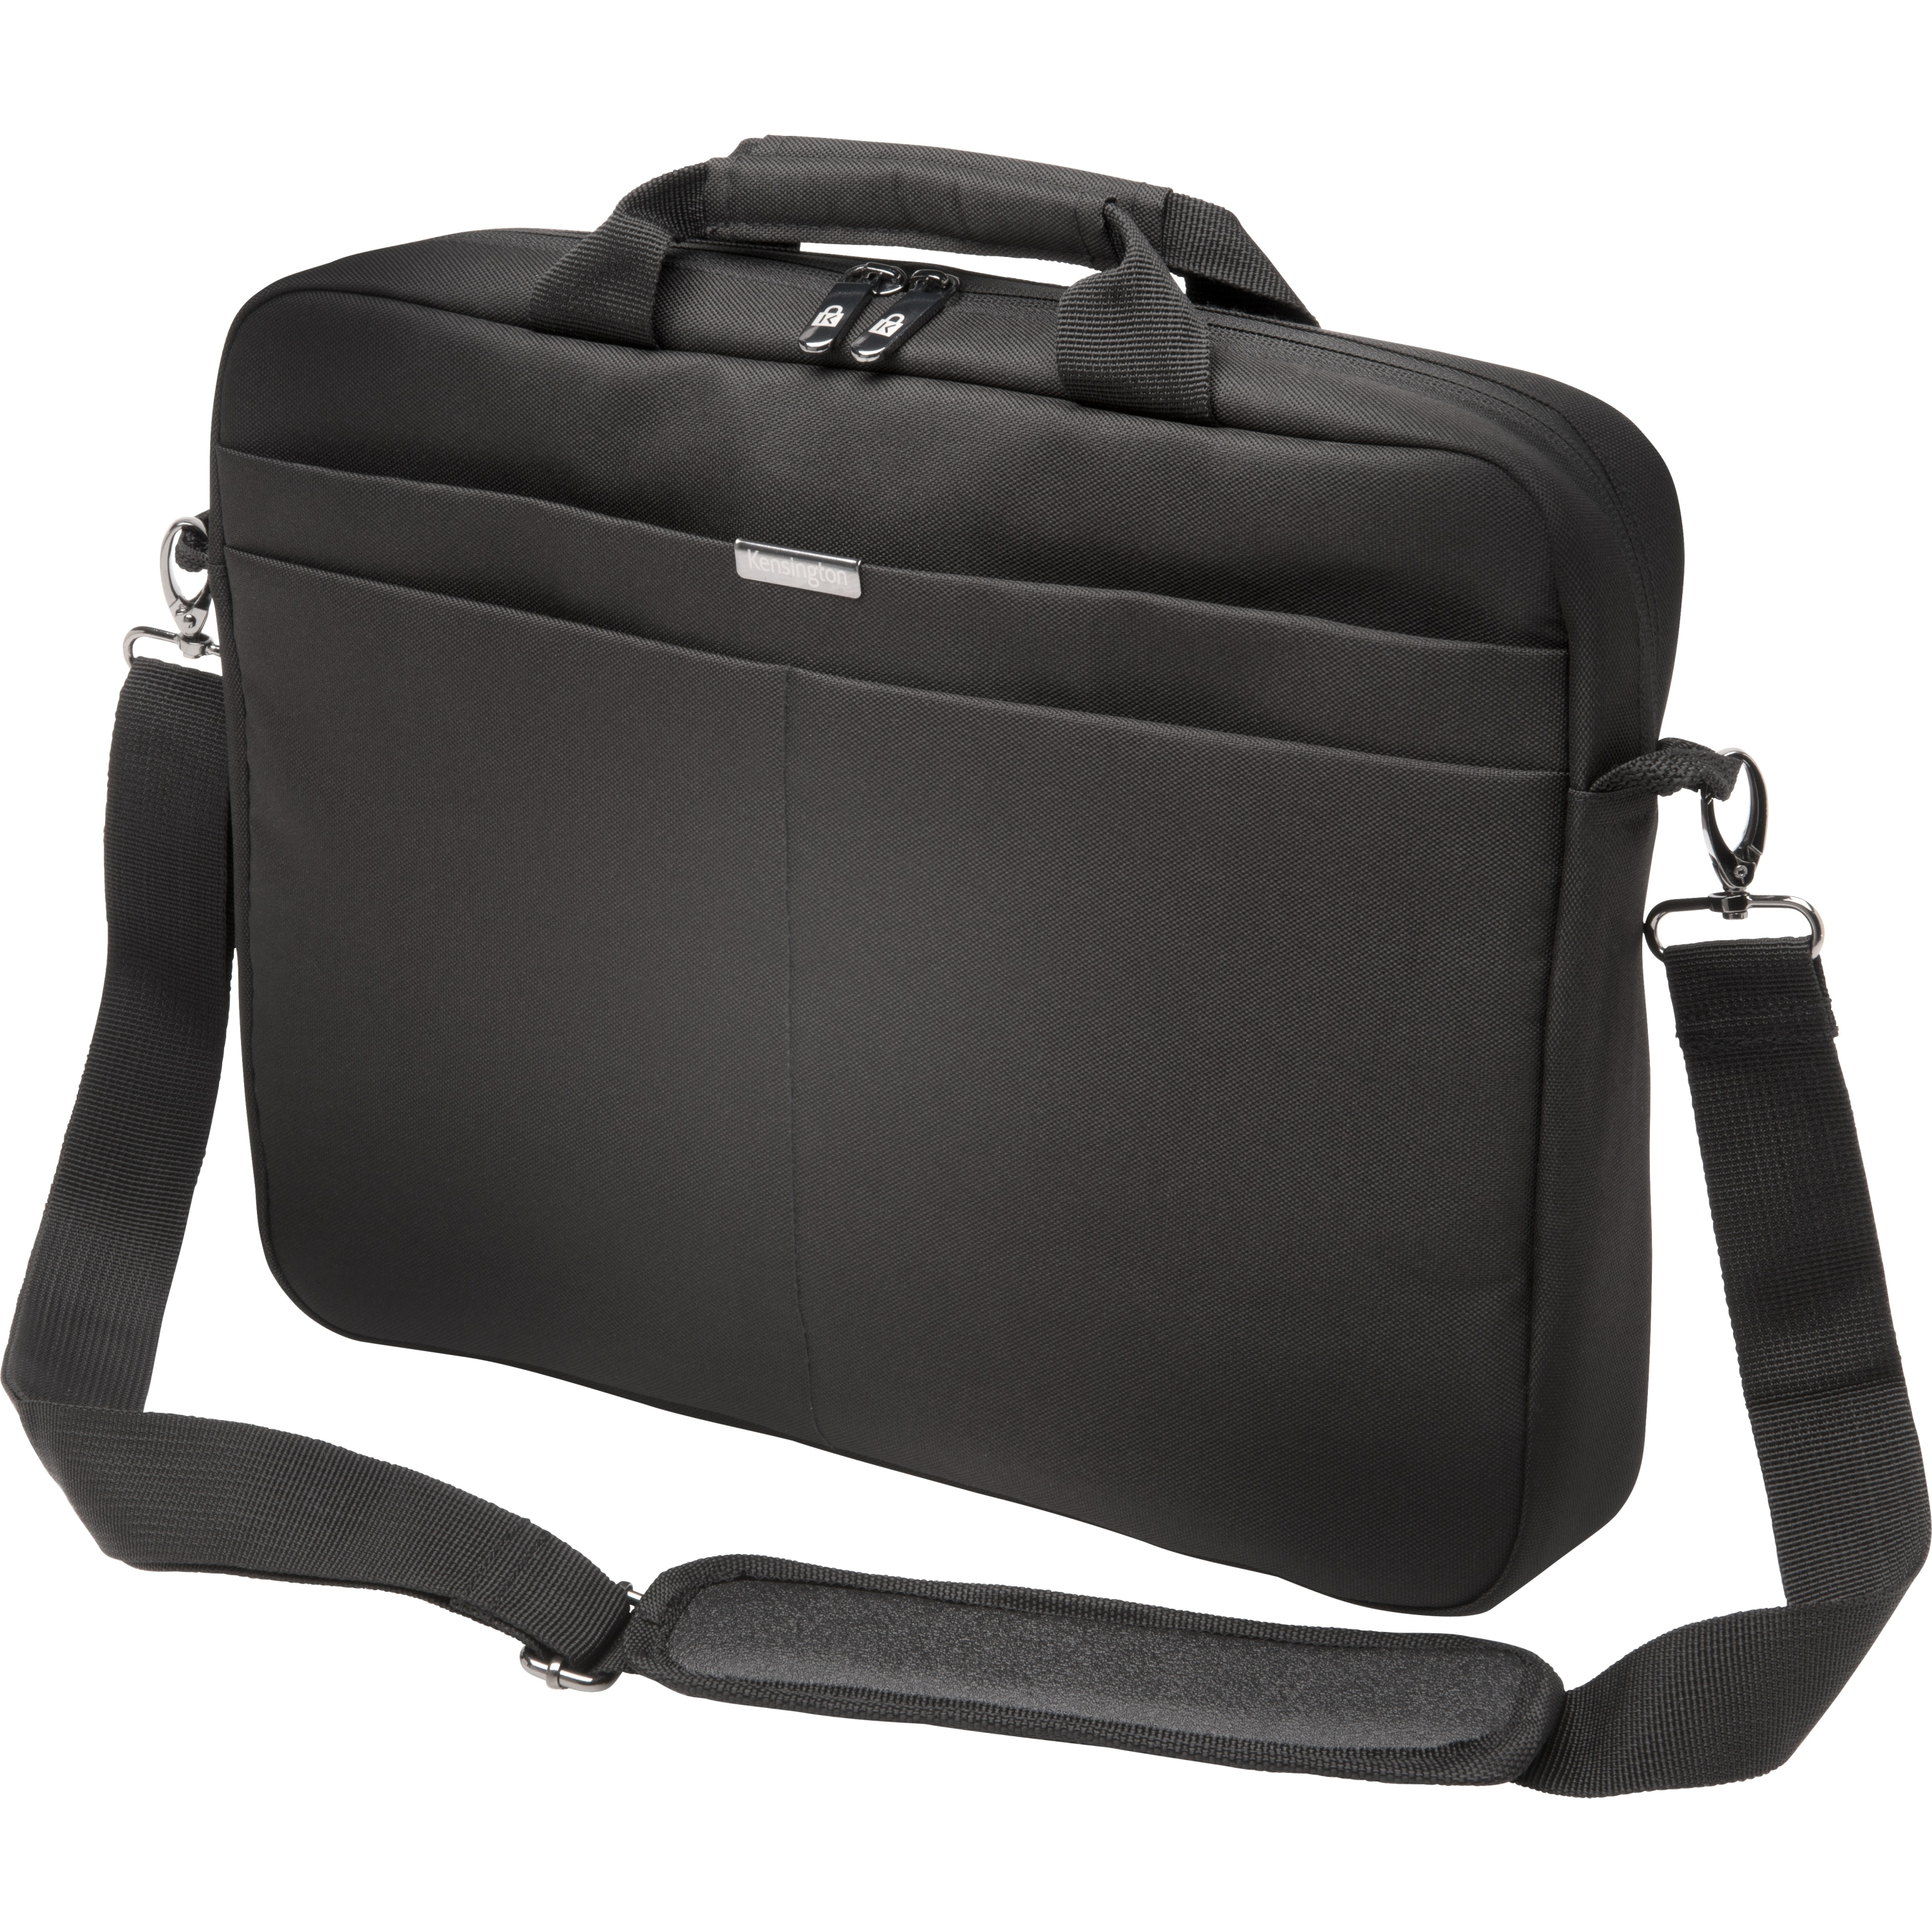 Kensington LS240 Laptop Carrying Case, 14.4""